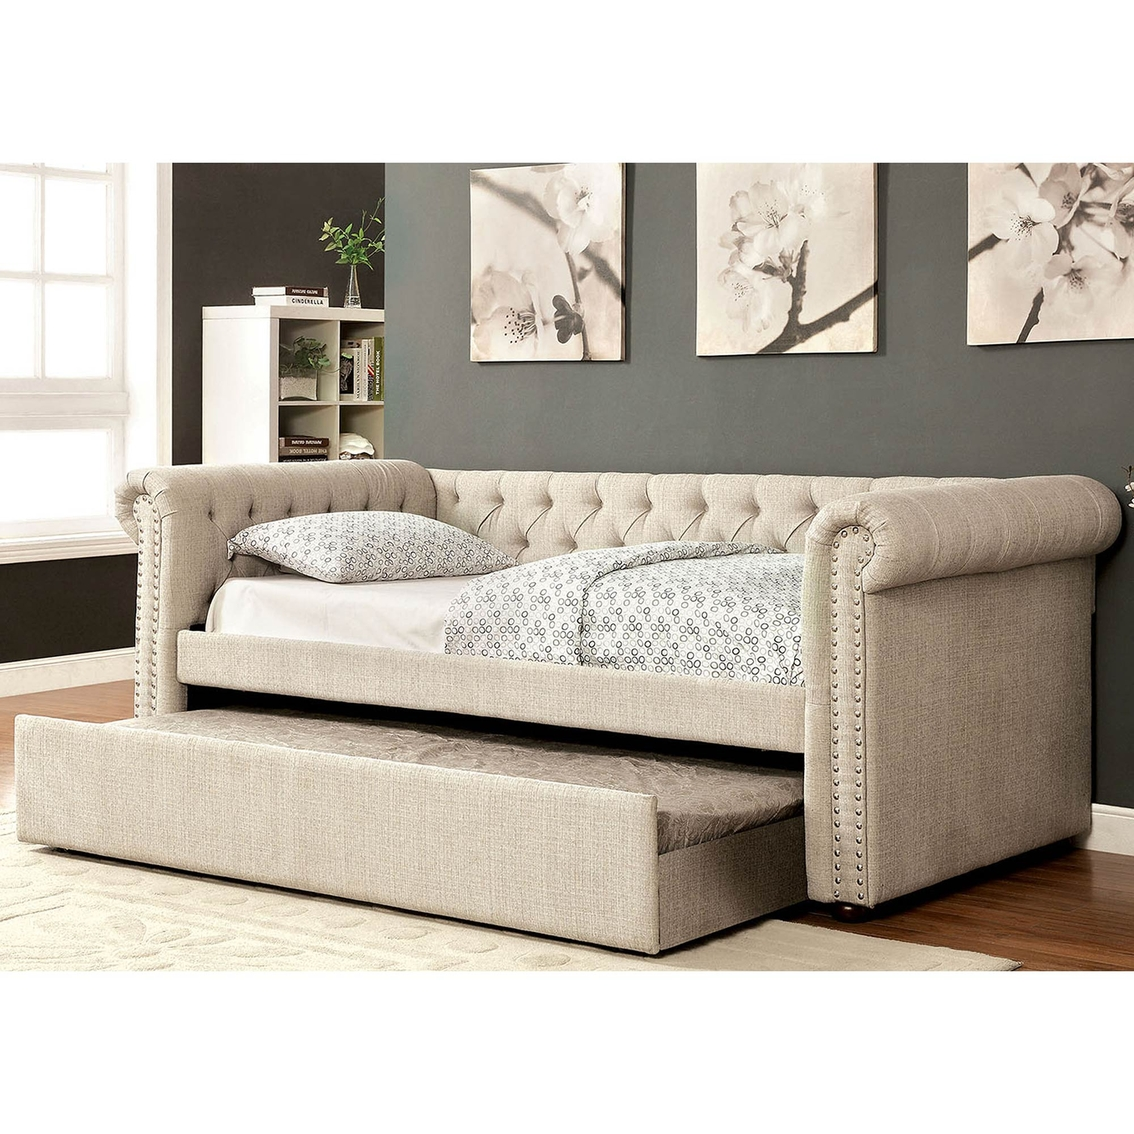 furniture of america leanna daybed with trundle beds home